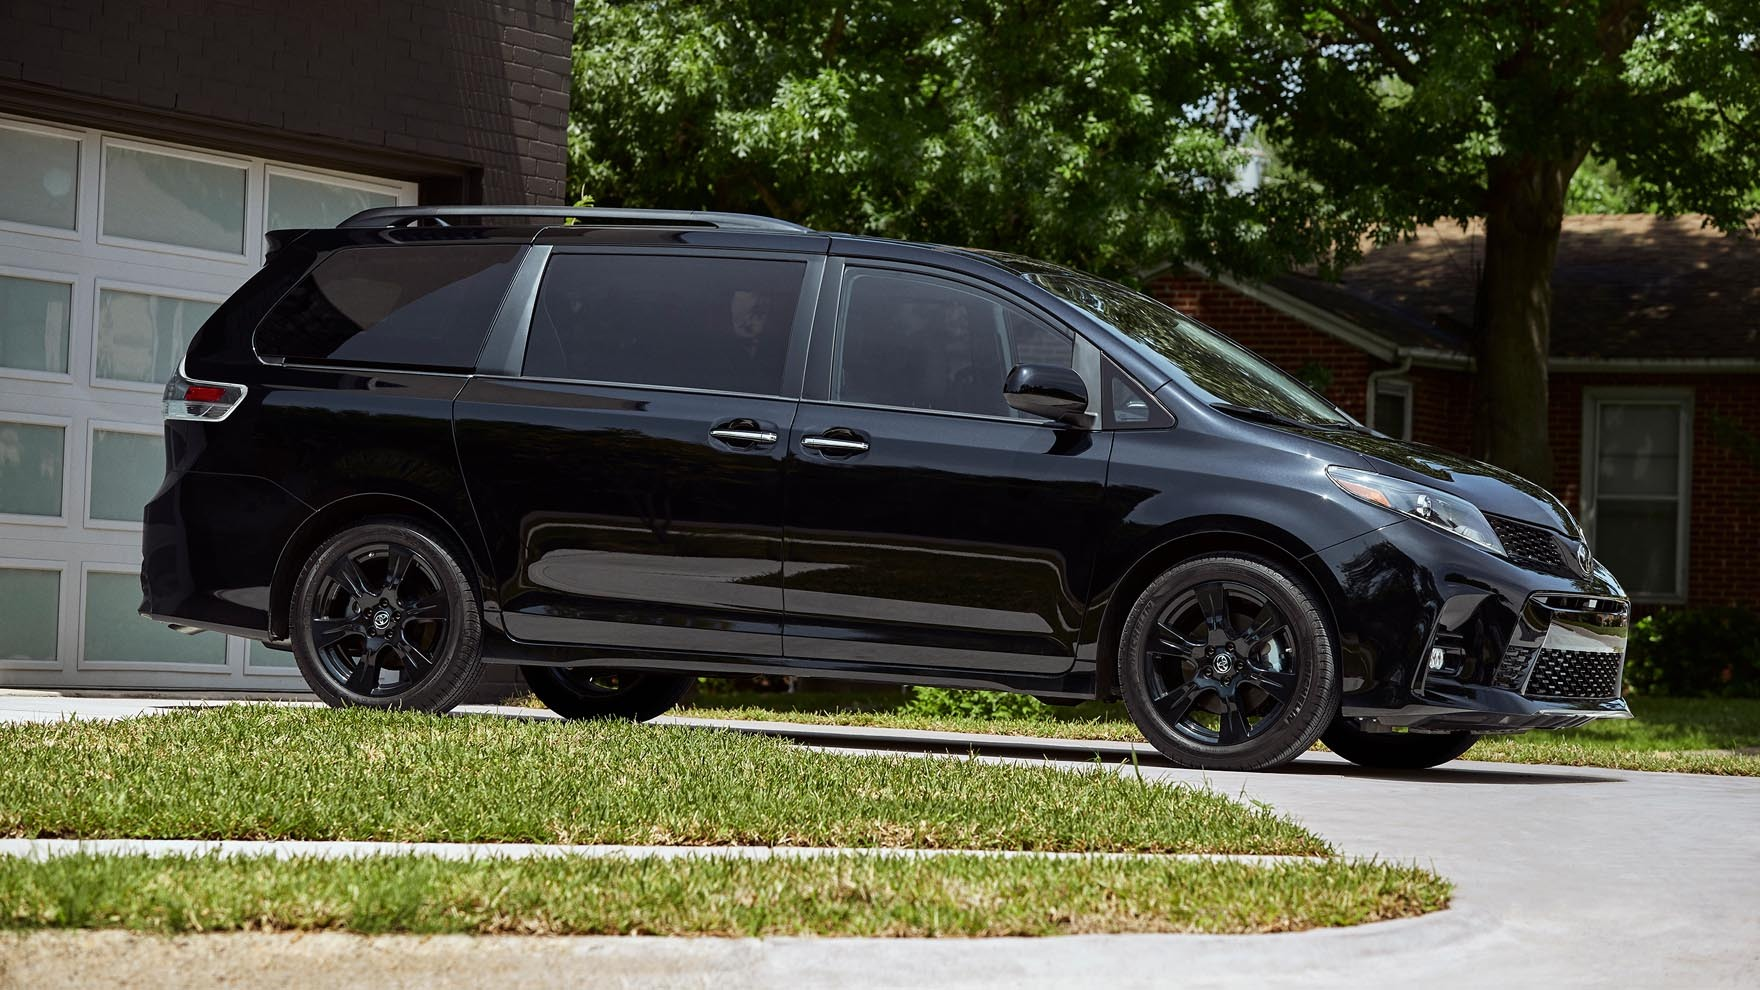 2020 toyota sienna review pricing specs features photos autoblog 2020 toyota sienna review pricing